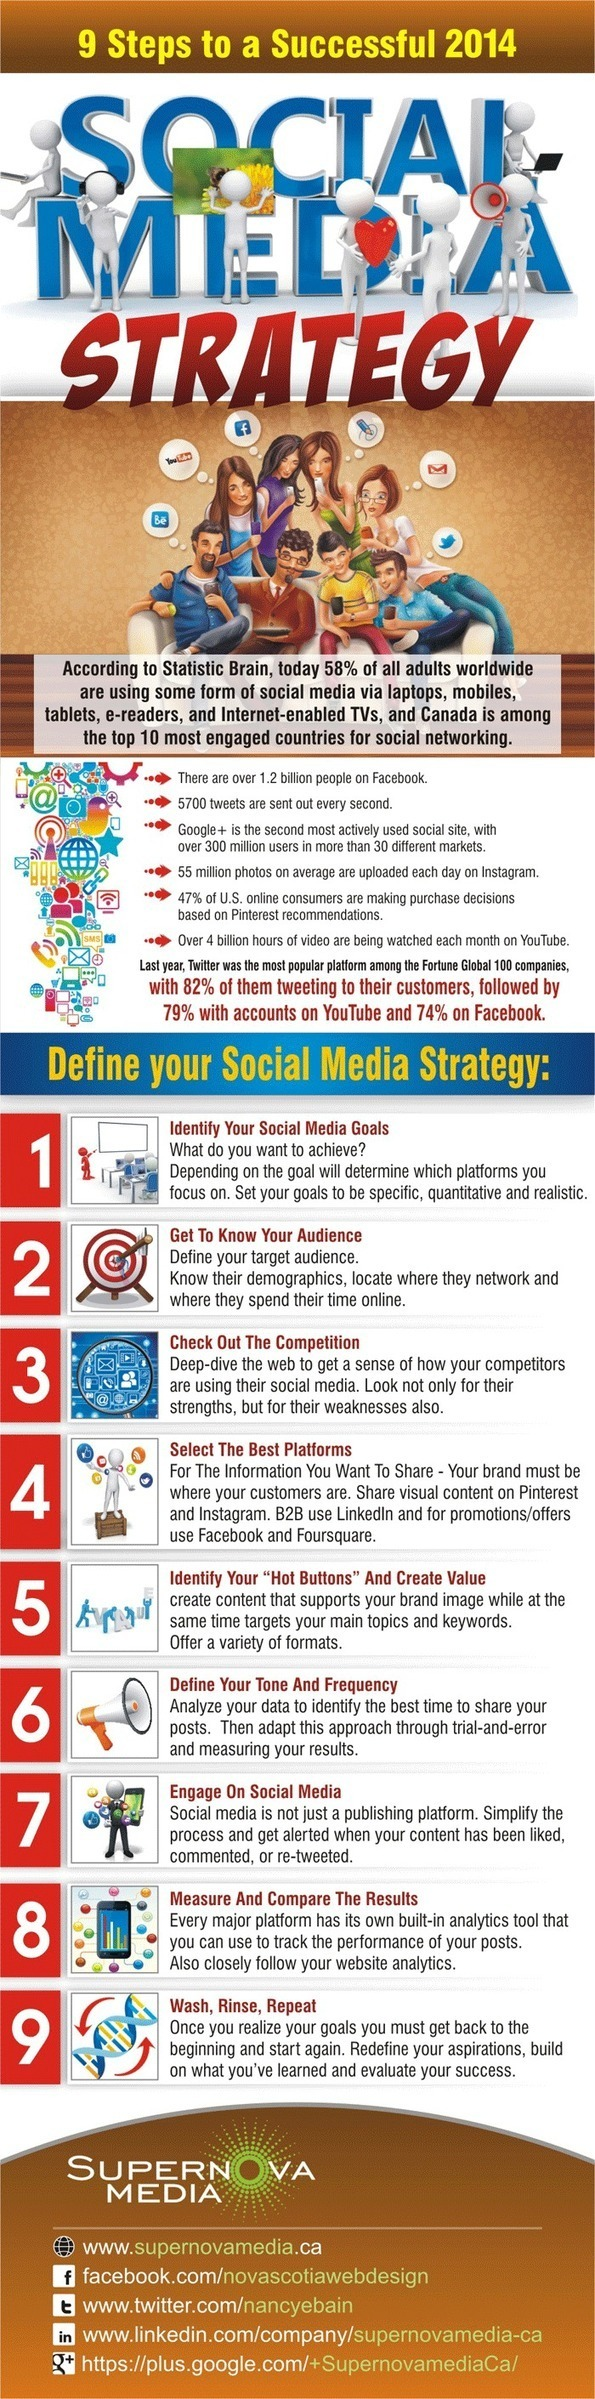 9 Steps to a successful 2014 social media strategy w/infographic. - Supernova Media